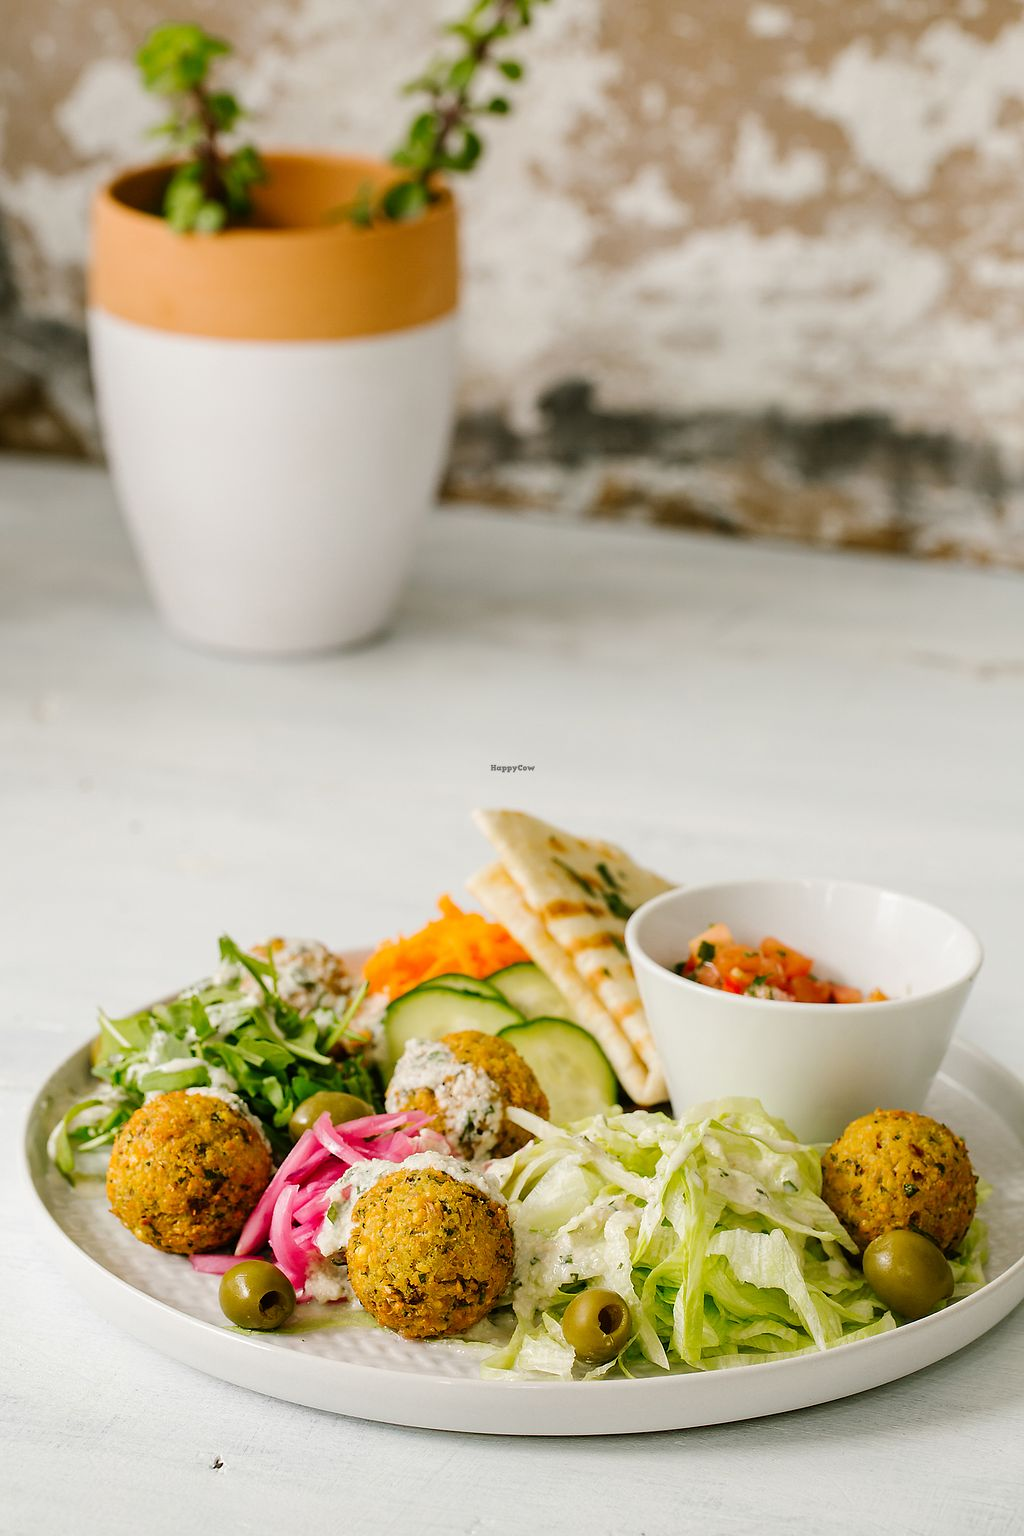 """Photo of Salti - Vegan Fast Food  by <a href=""""/members/profile/gimpel"""">gimpel</a> <br/>Falafel <br/> November 24, 2017  - <a href='/contact/abuse/image/104408/328780'>Report</a>"""